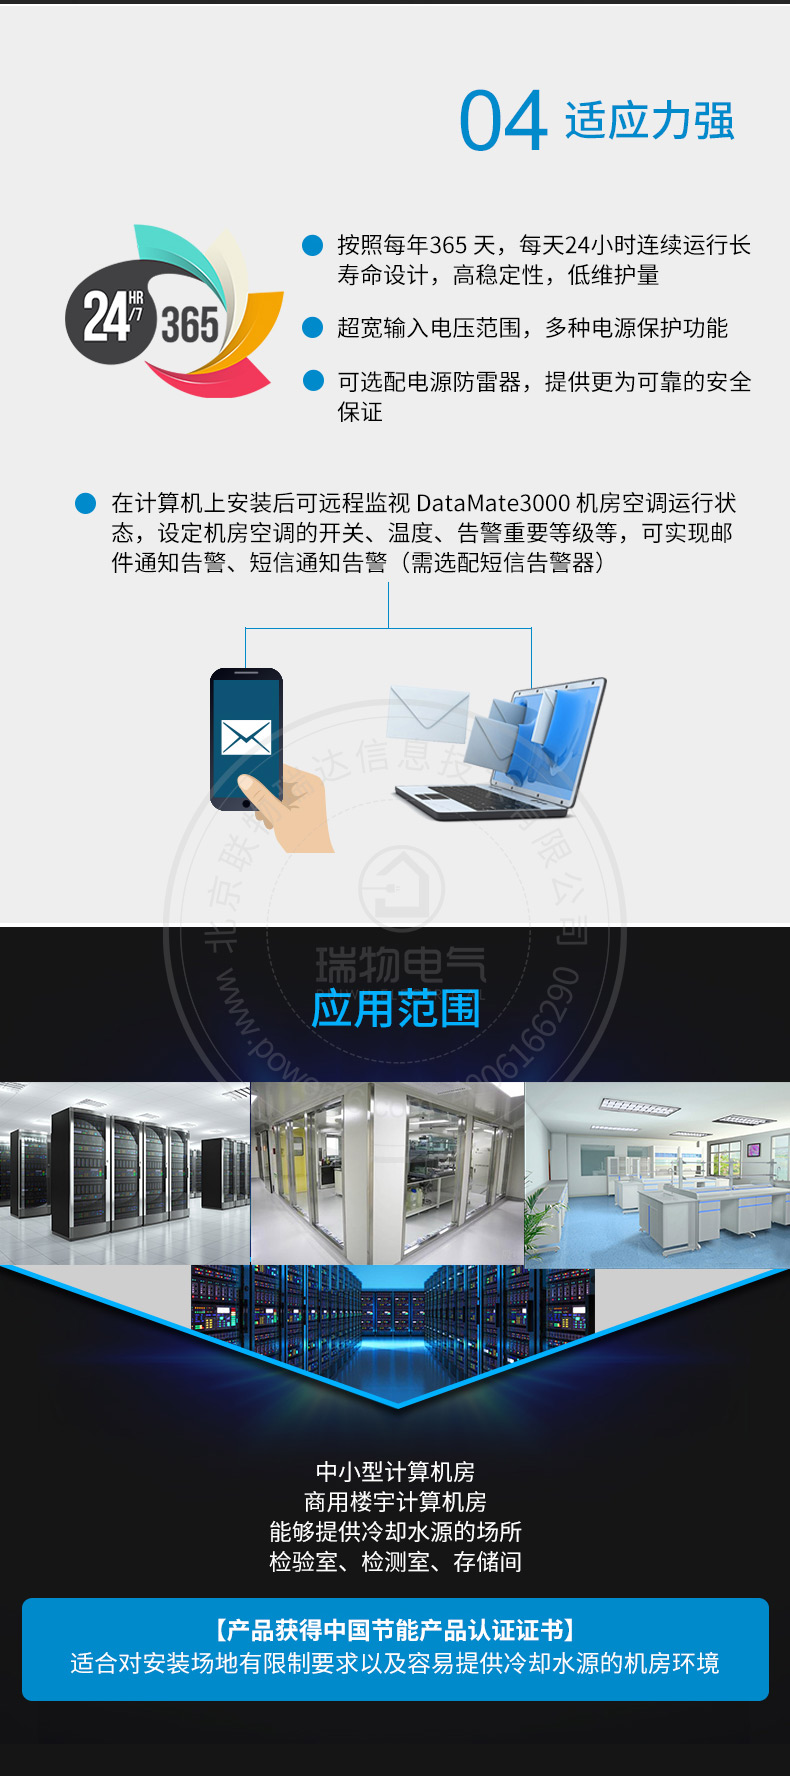 产品介绍http://www.power86.com/rs1/air/590/616/72/72_c4.jpg